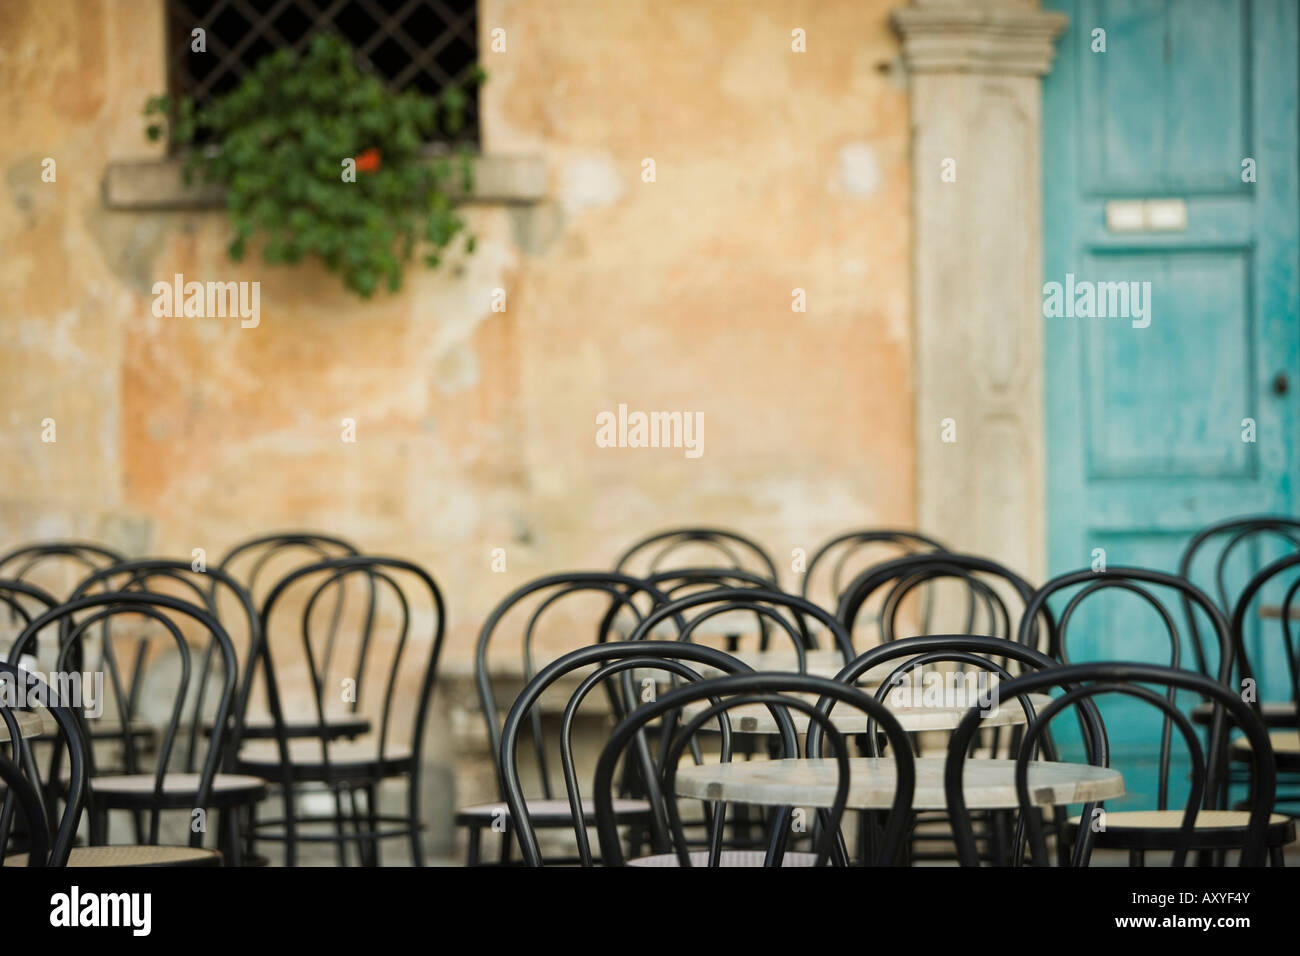 Empty tables at cafe, Lake Maggiore, Italy, Europe - Stock Image